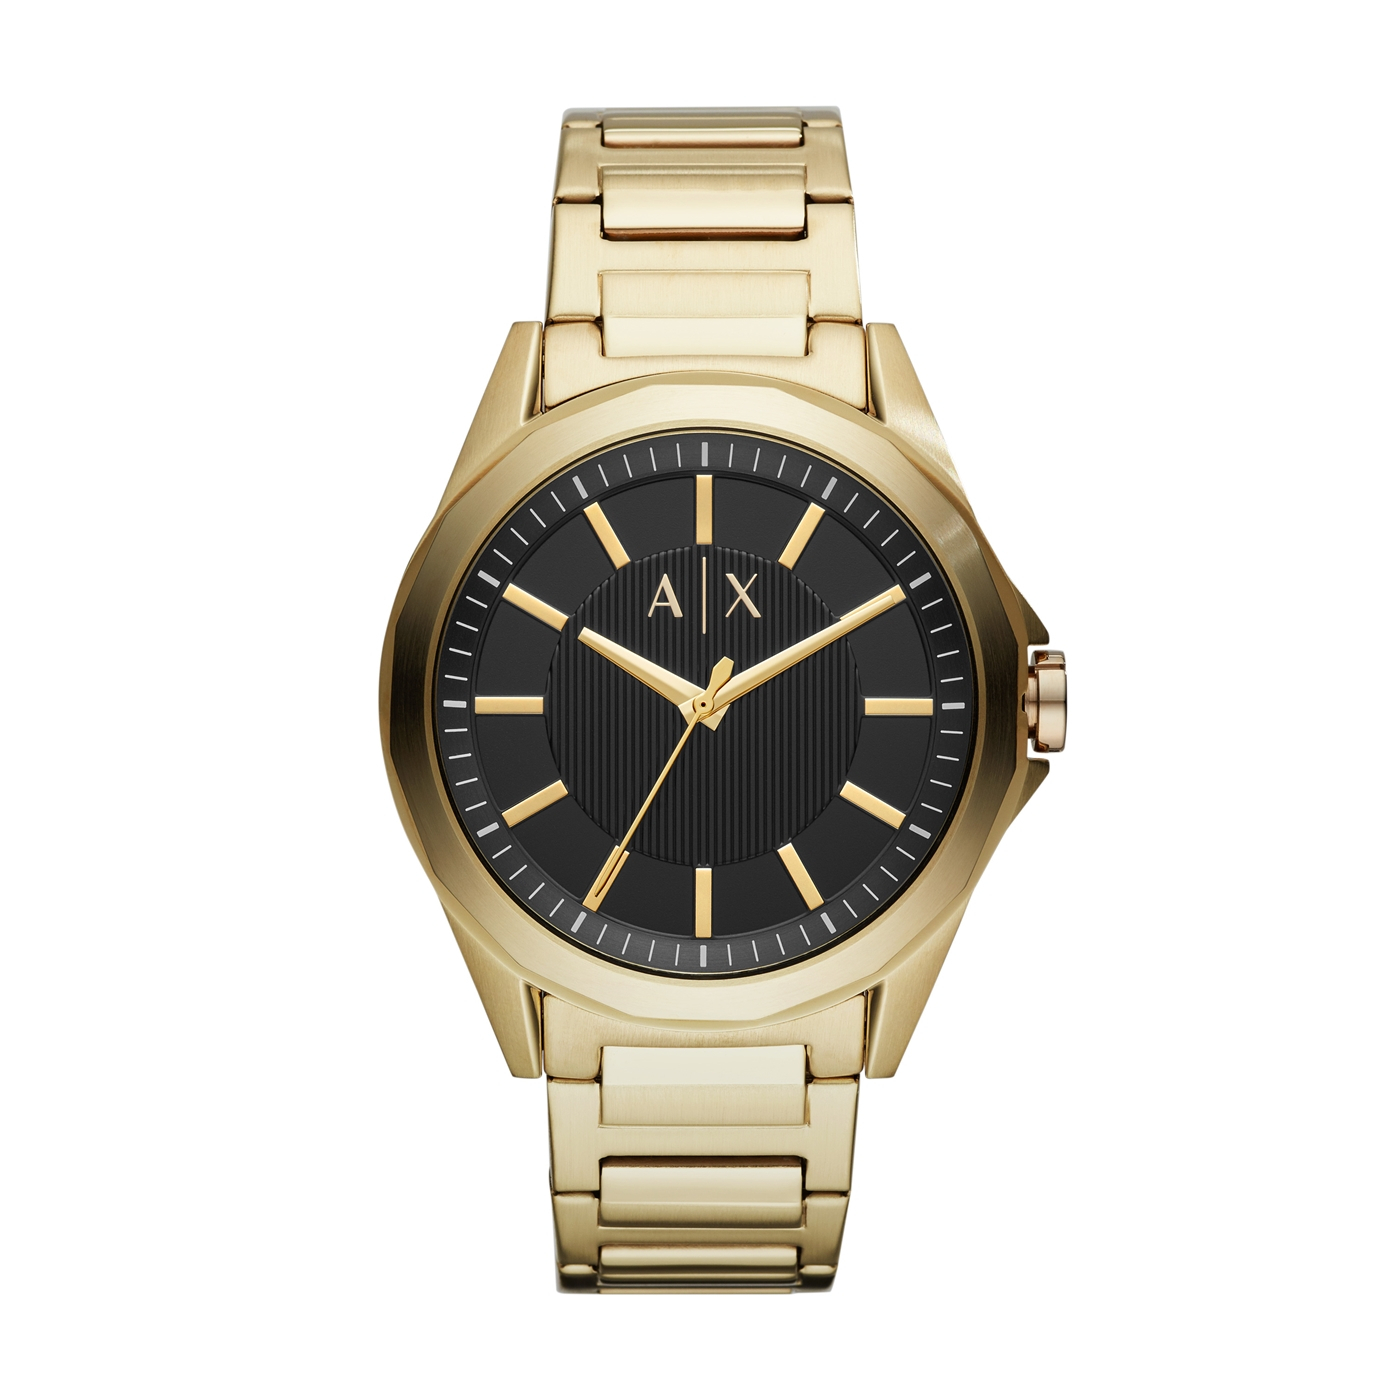 Bilde av Armani Exchange Drexler Watch AX2619